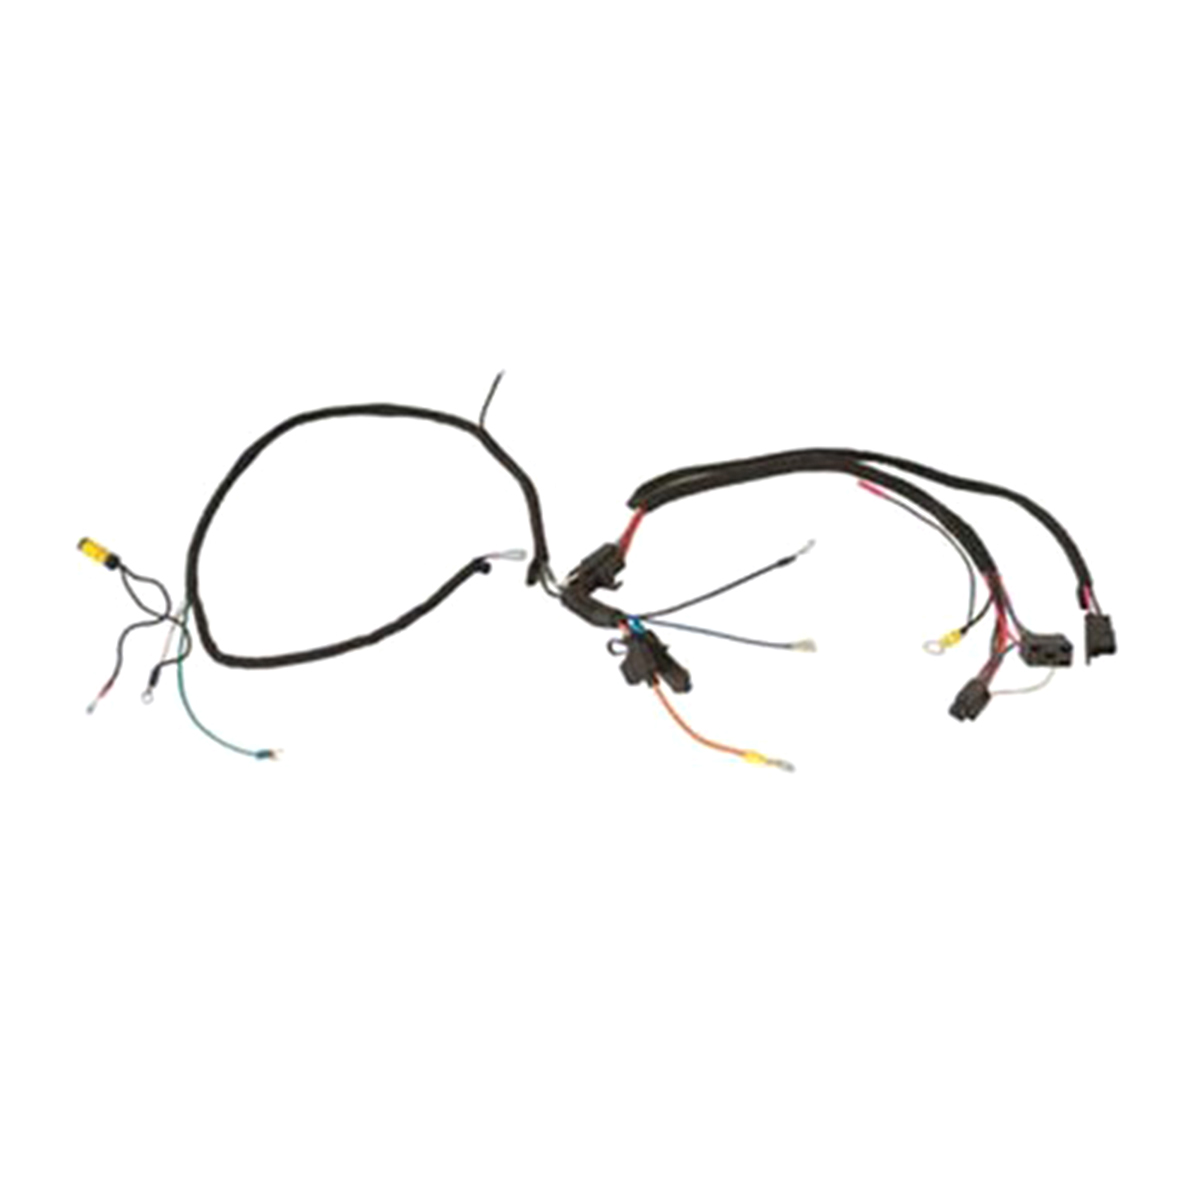 500030 Dixie Chopper Kohler/Generac Wiring Harness